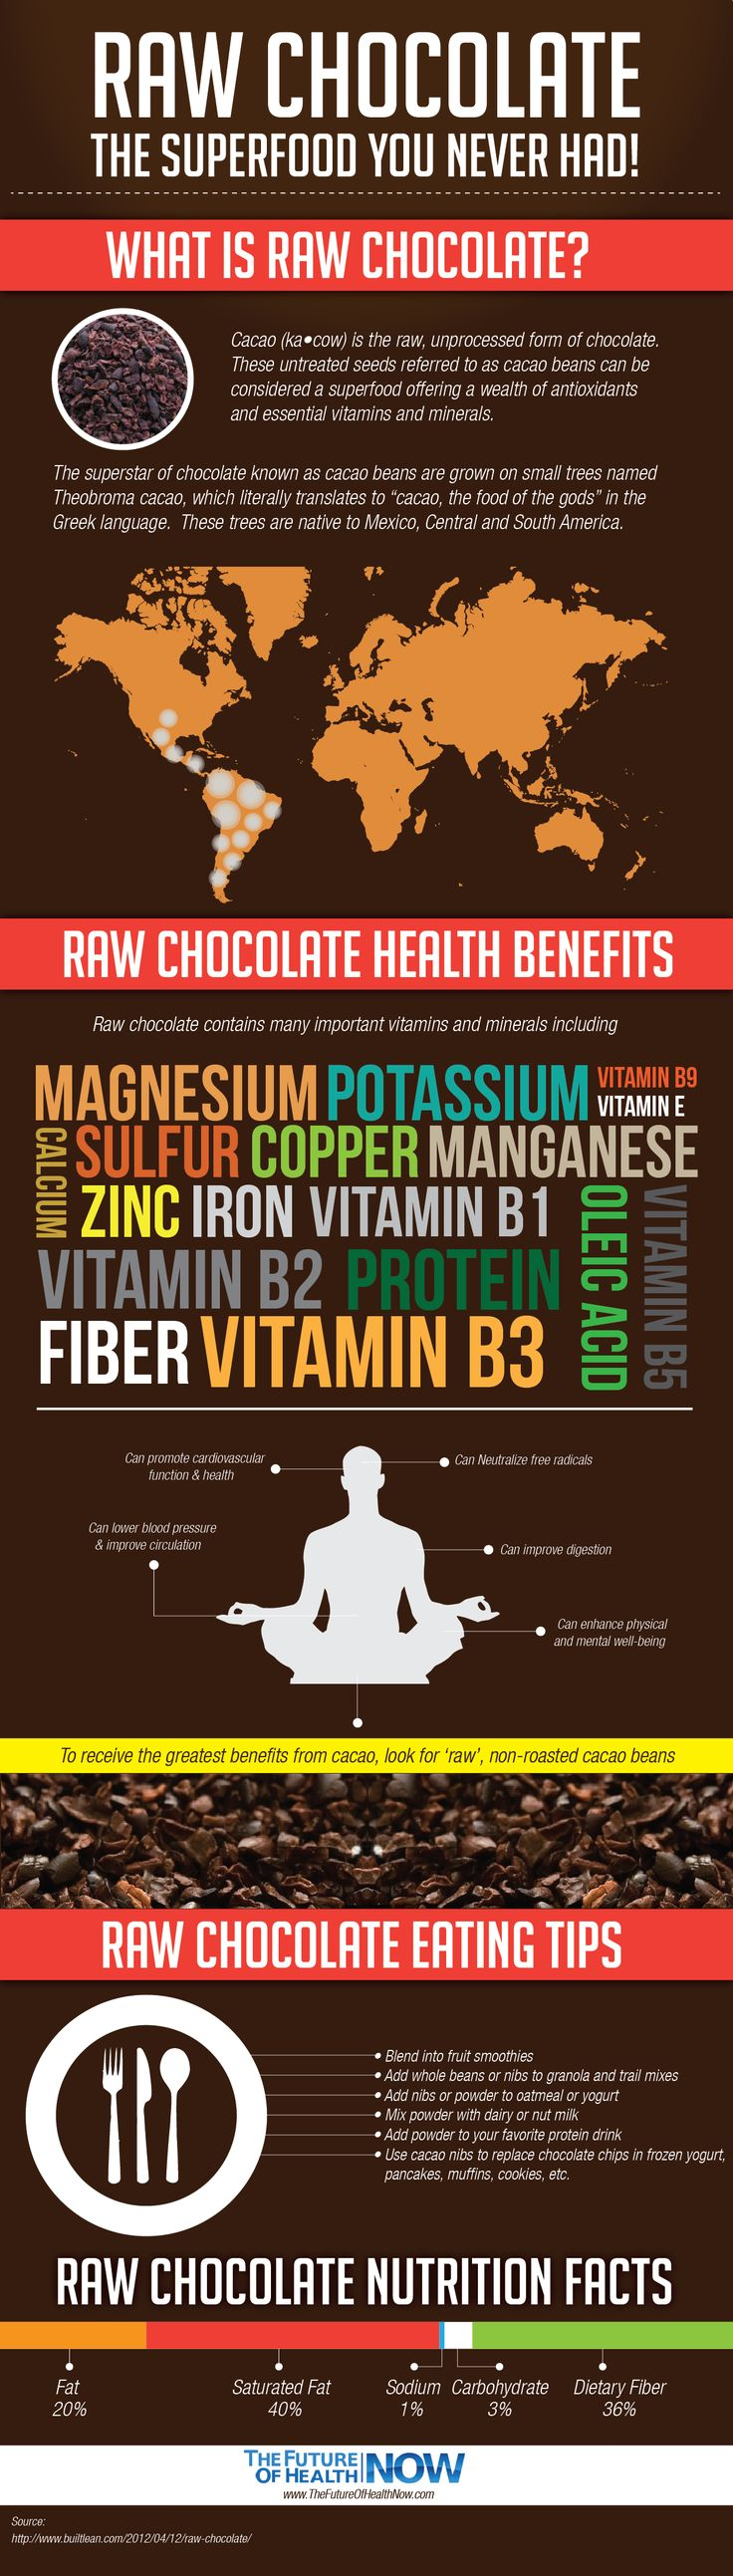 Benefits of Raw Chocolate    http://www.thefutureofhealthnow.com/chocolate-a-super-food-eat-it-be-healthy/    This infographic was inspired by an article written by Jessica Zack.  Did you know that there were so many benefits to eating raw chocolate?    Repin, tweet, and like if you feel others can benefit from this information!